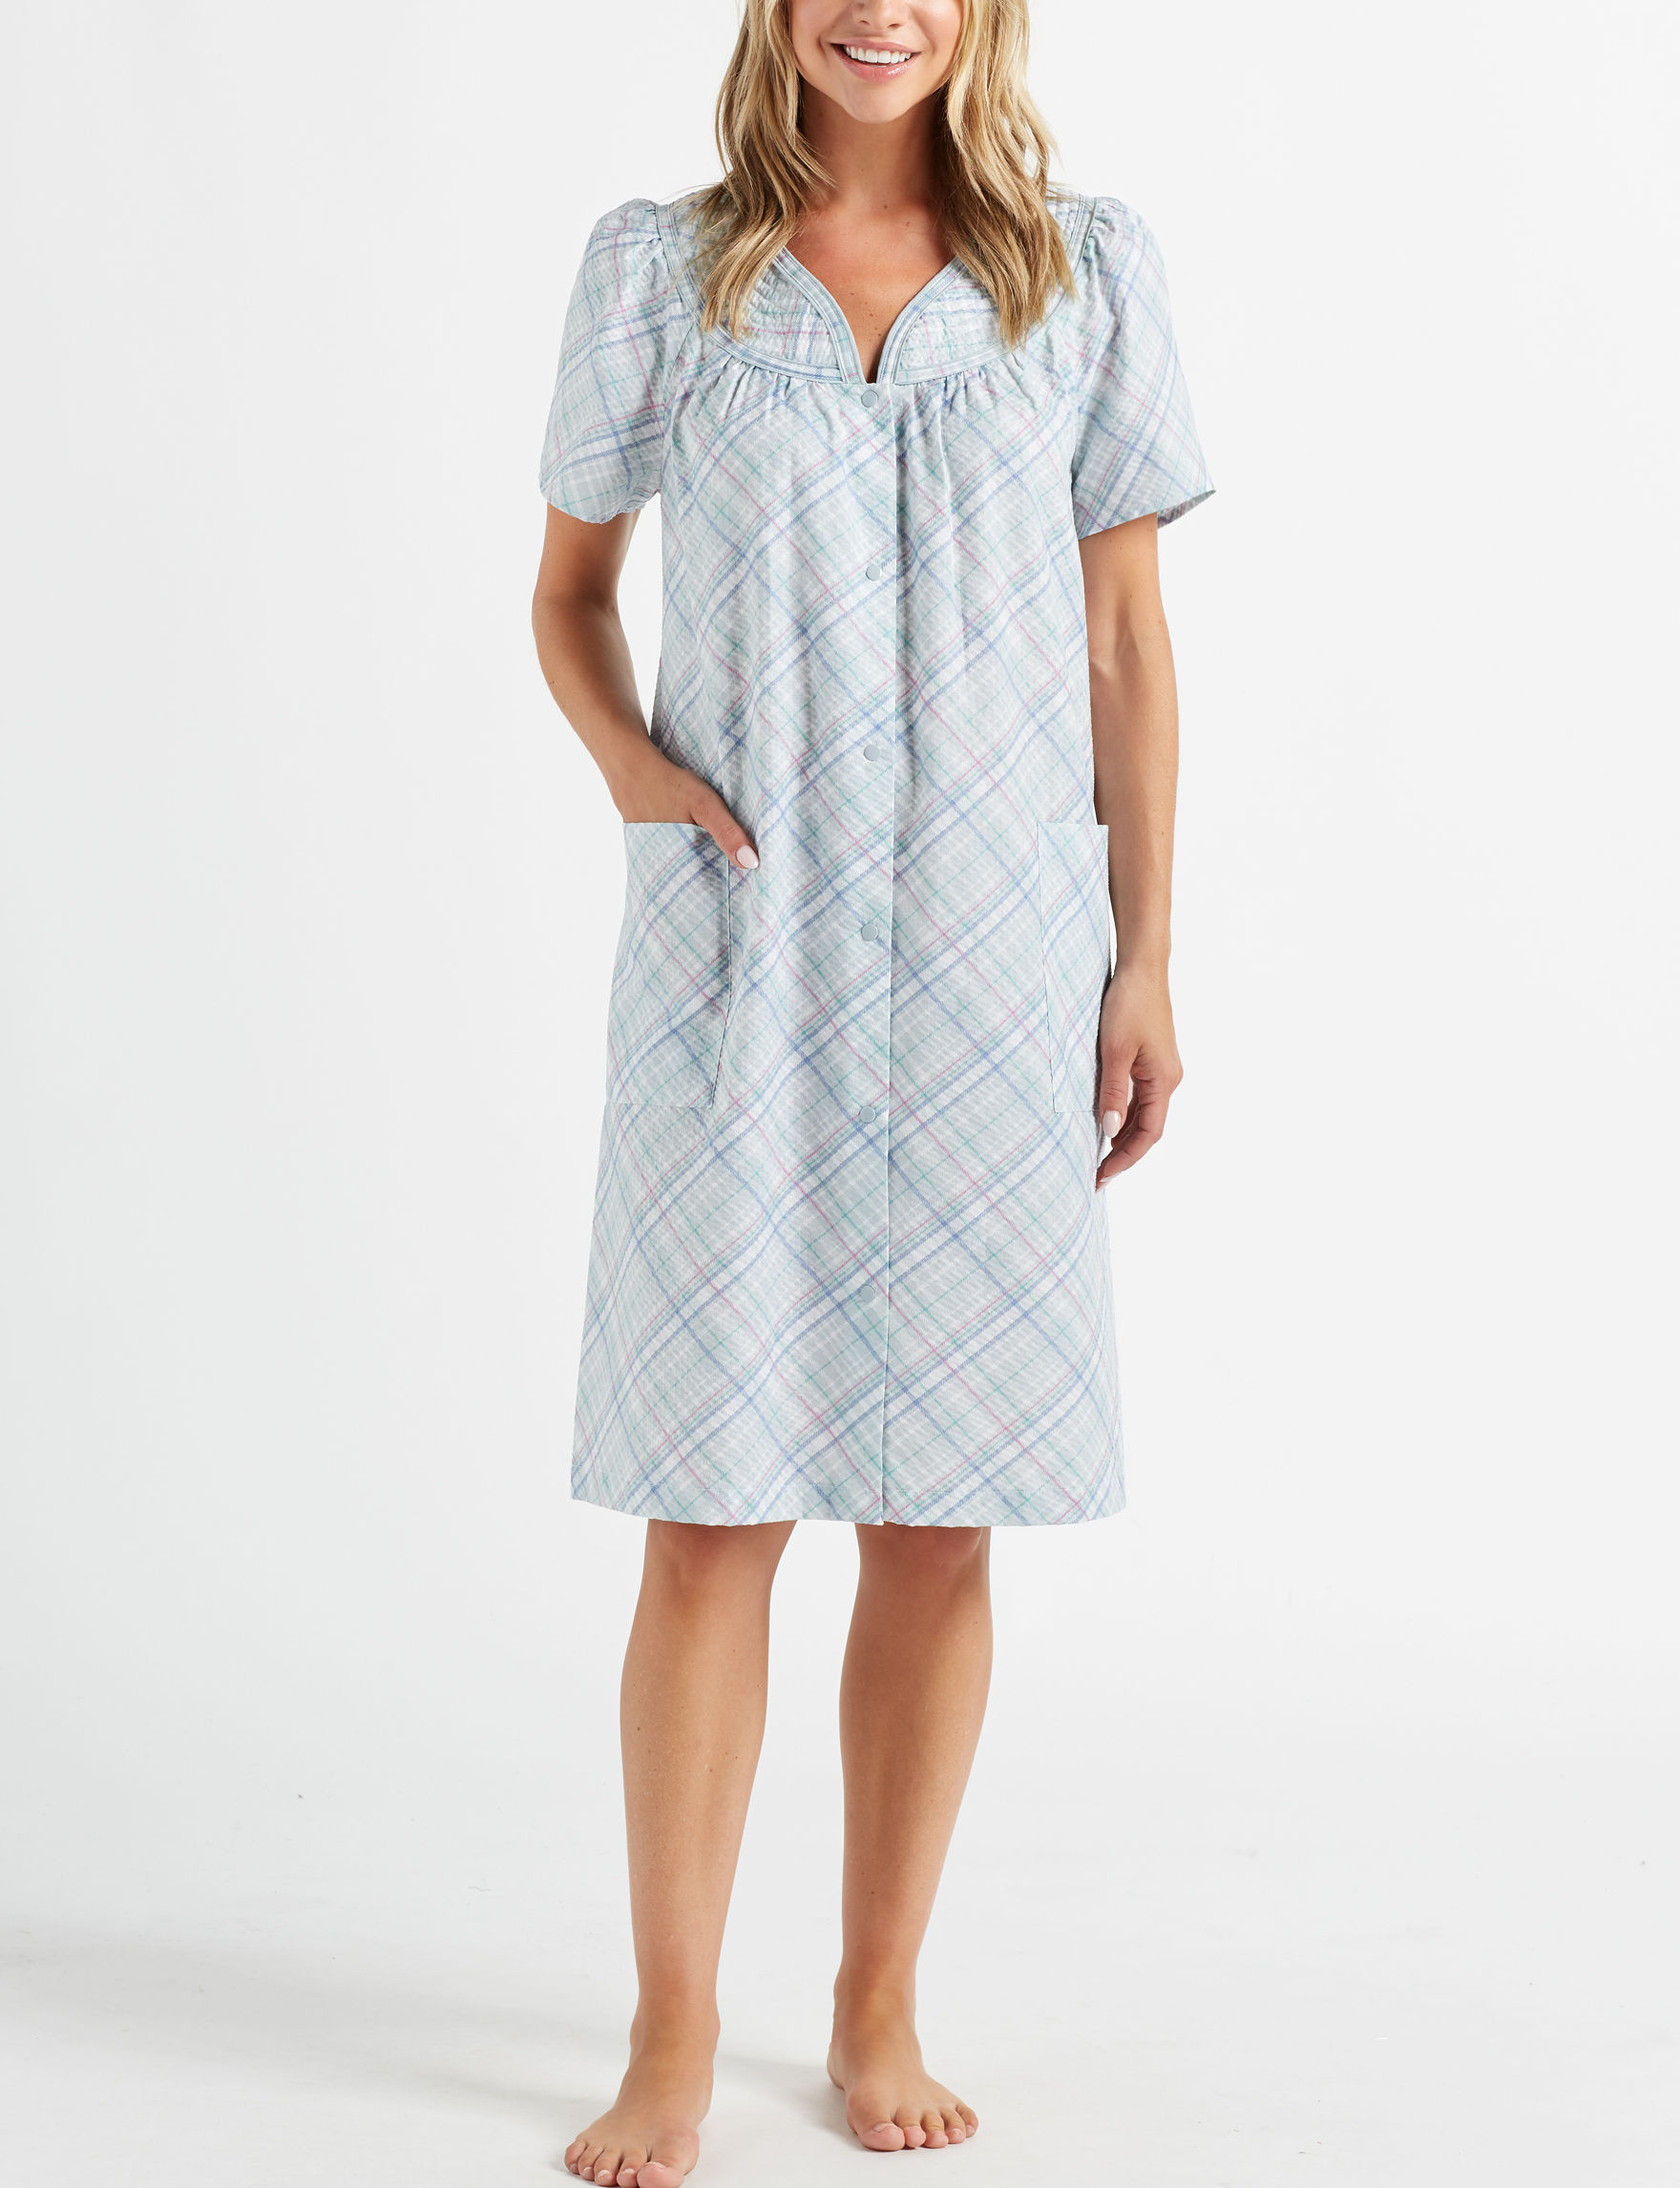 Lissome Blue Plaid Robes, Wraps & Dusters